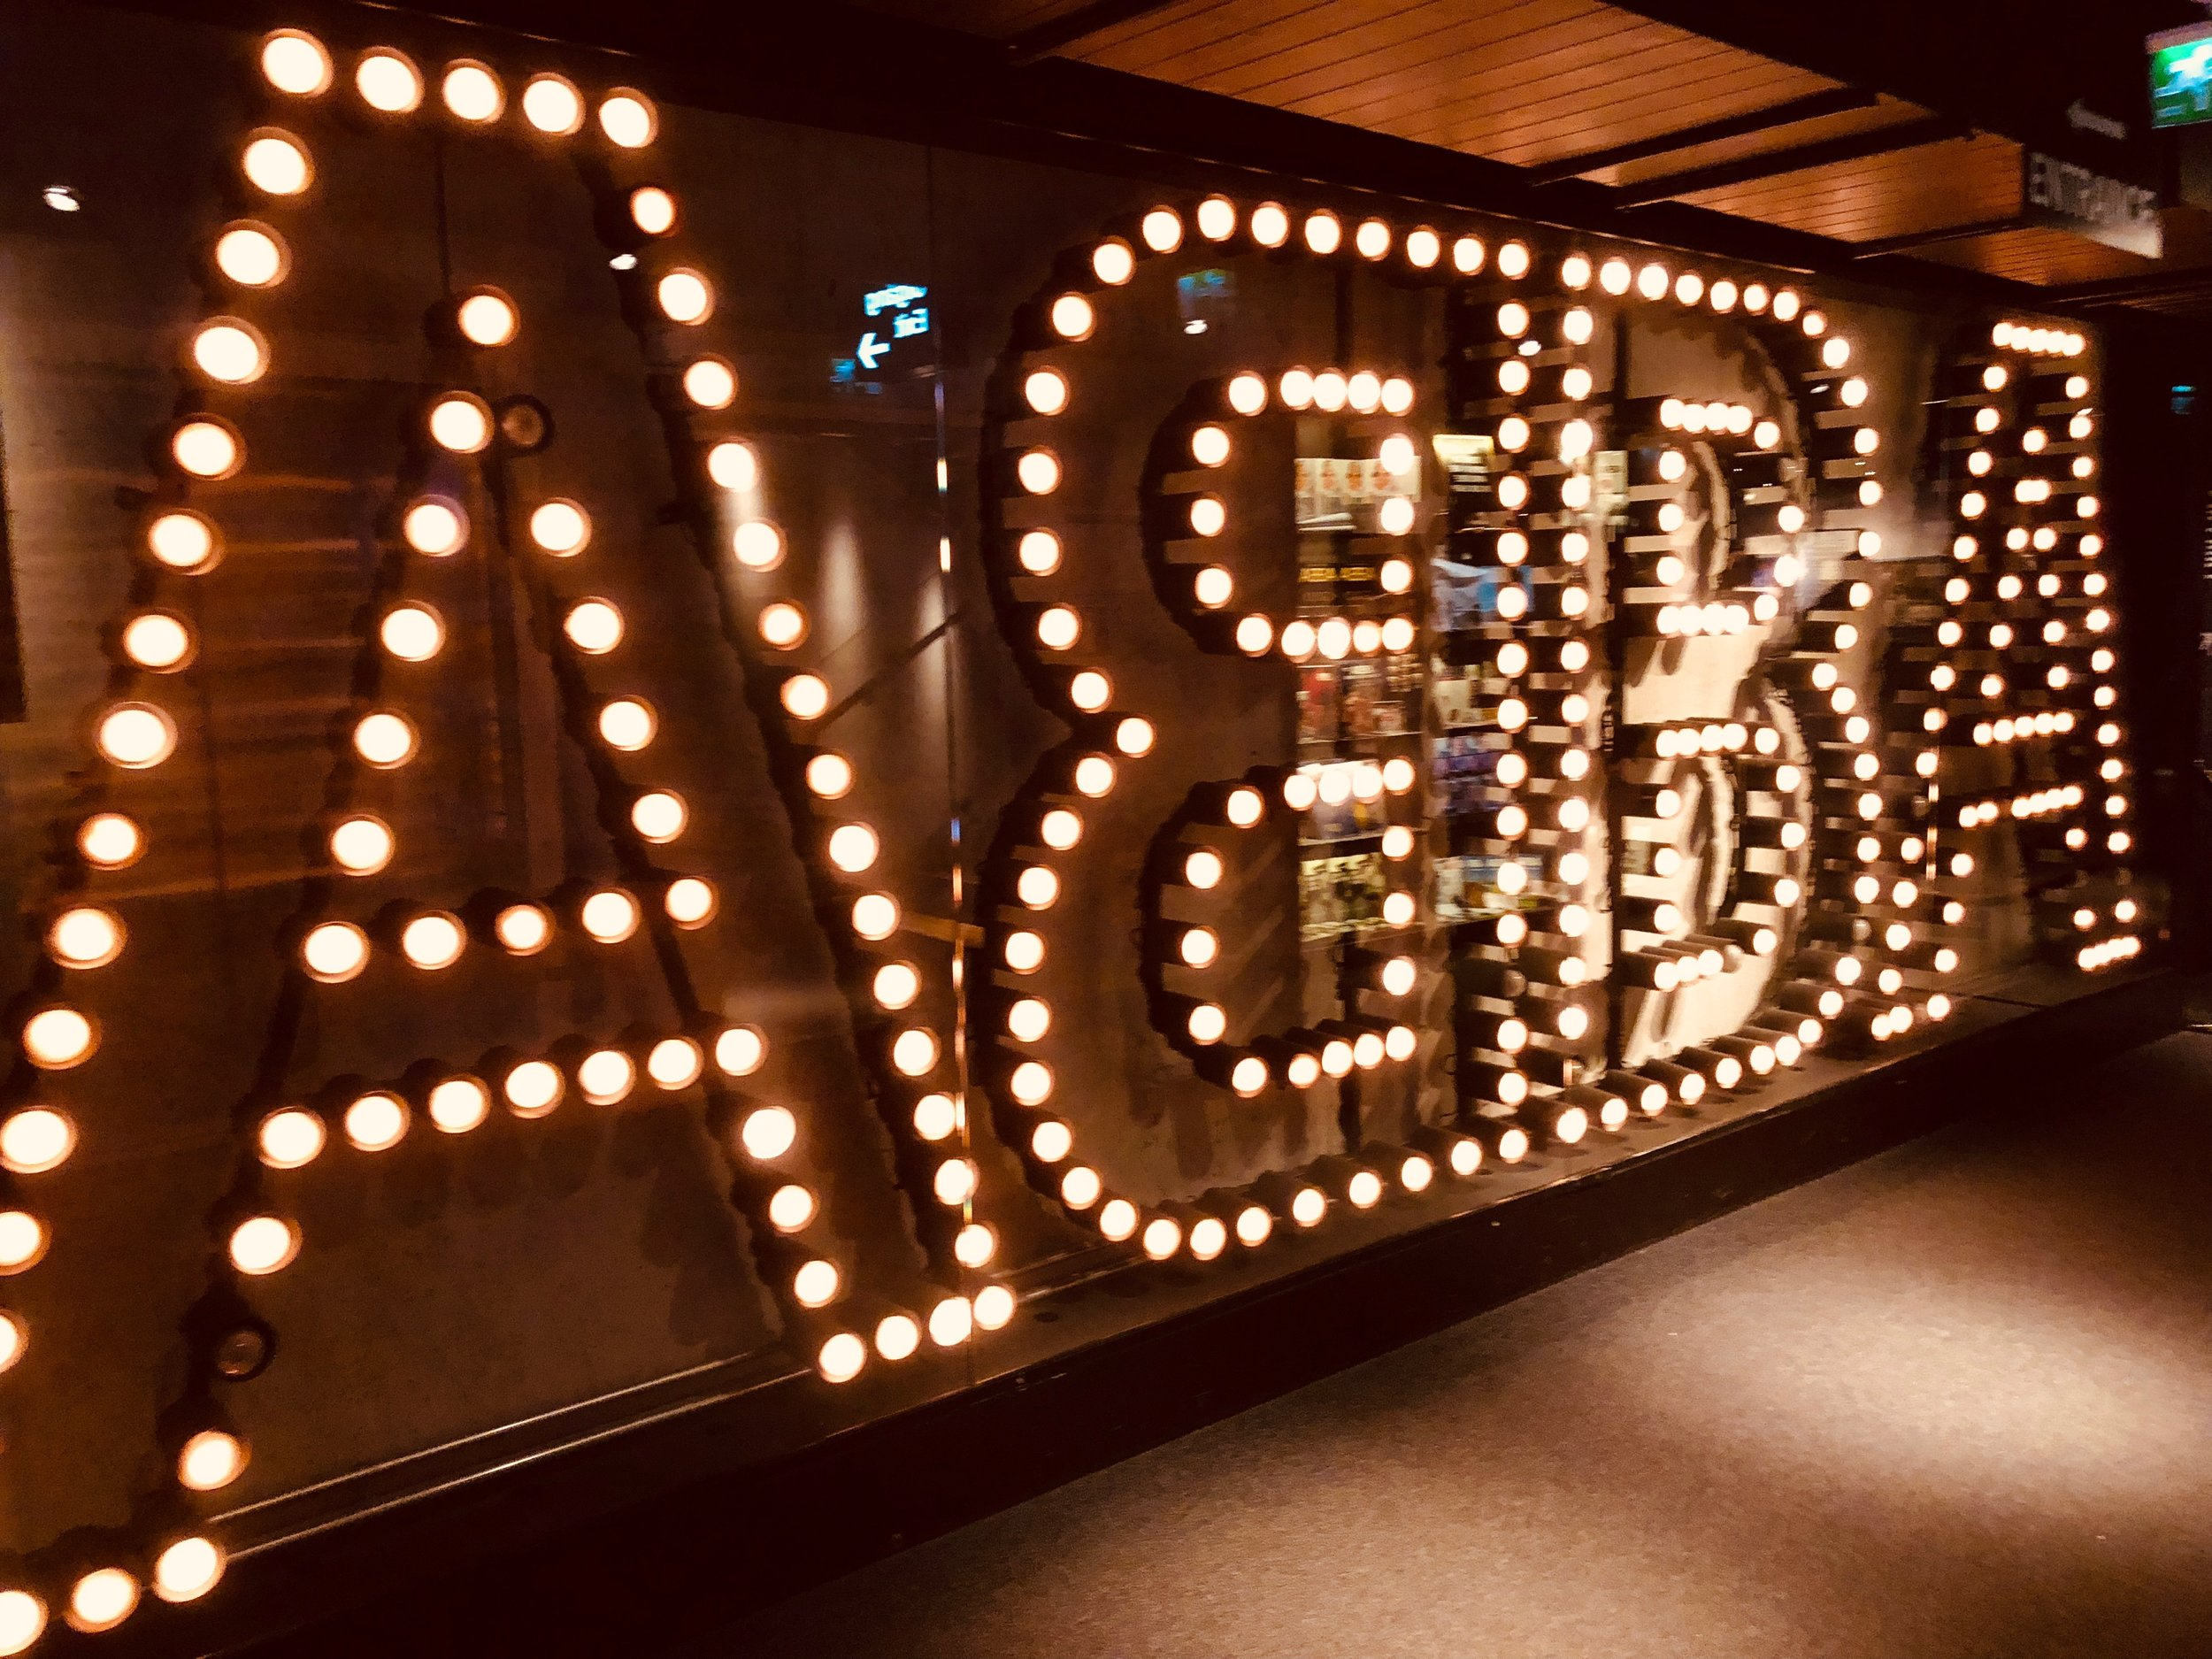 ABBA The Museum - Dancing Queen! Mamma Mia! Waterloo! Voulez-Vous! What's not to love about this Swedish Super Trooper group? This museum is great fun!Photo by Miriam Bourin/Global Local Traveler